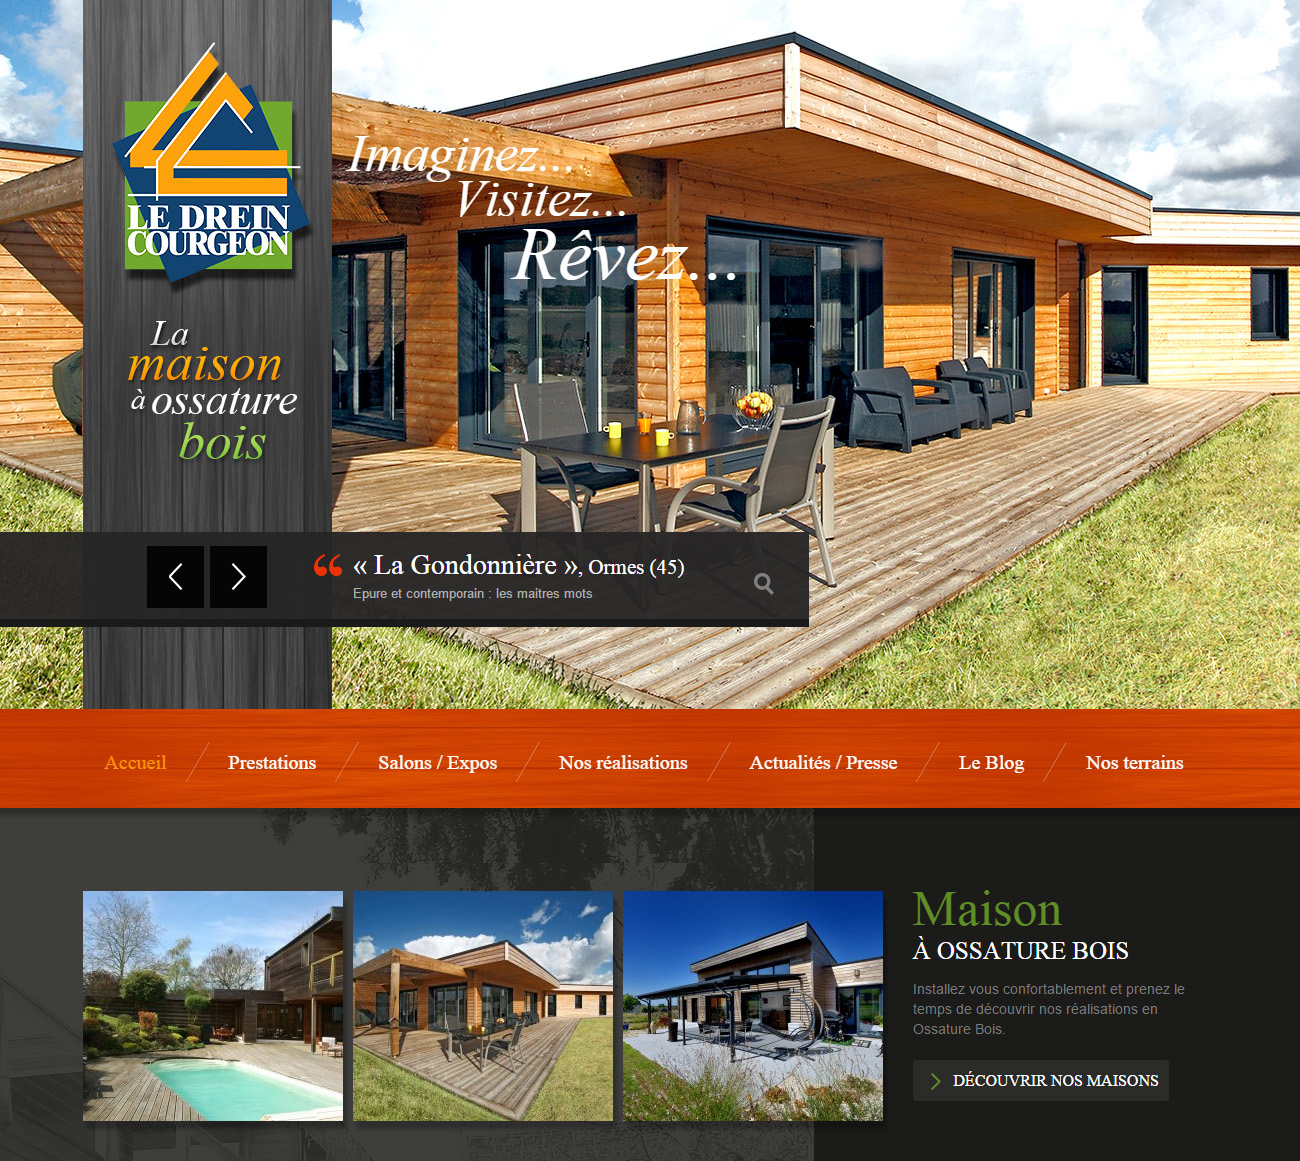 ledrein-courgeon site wordpress